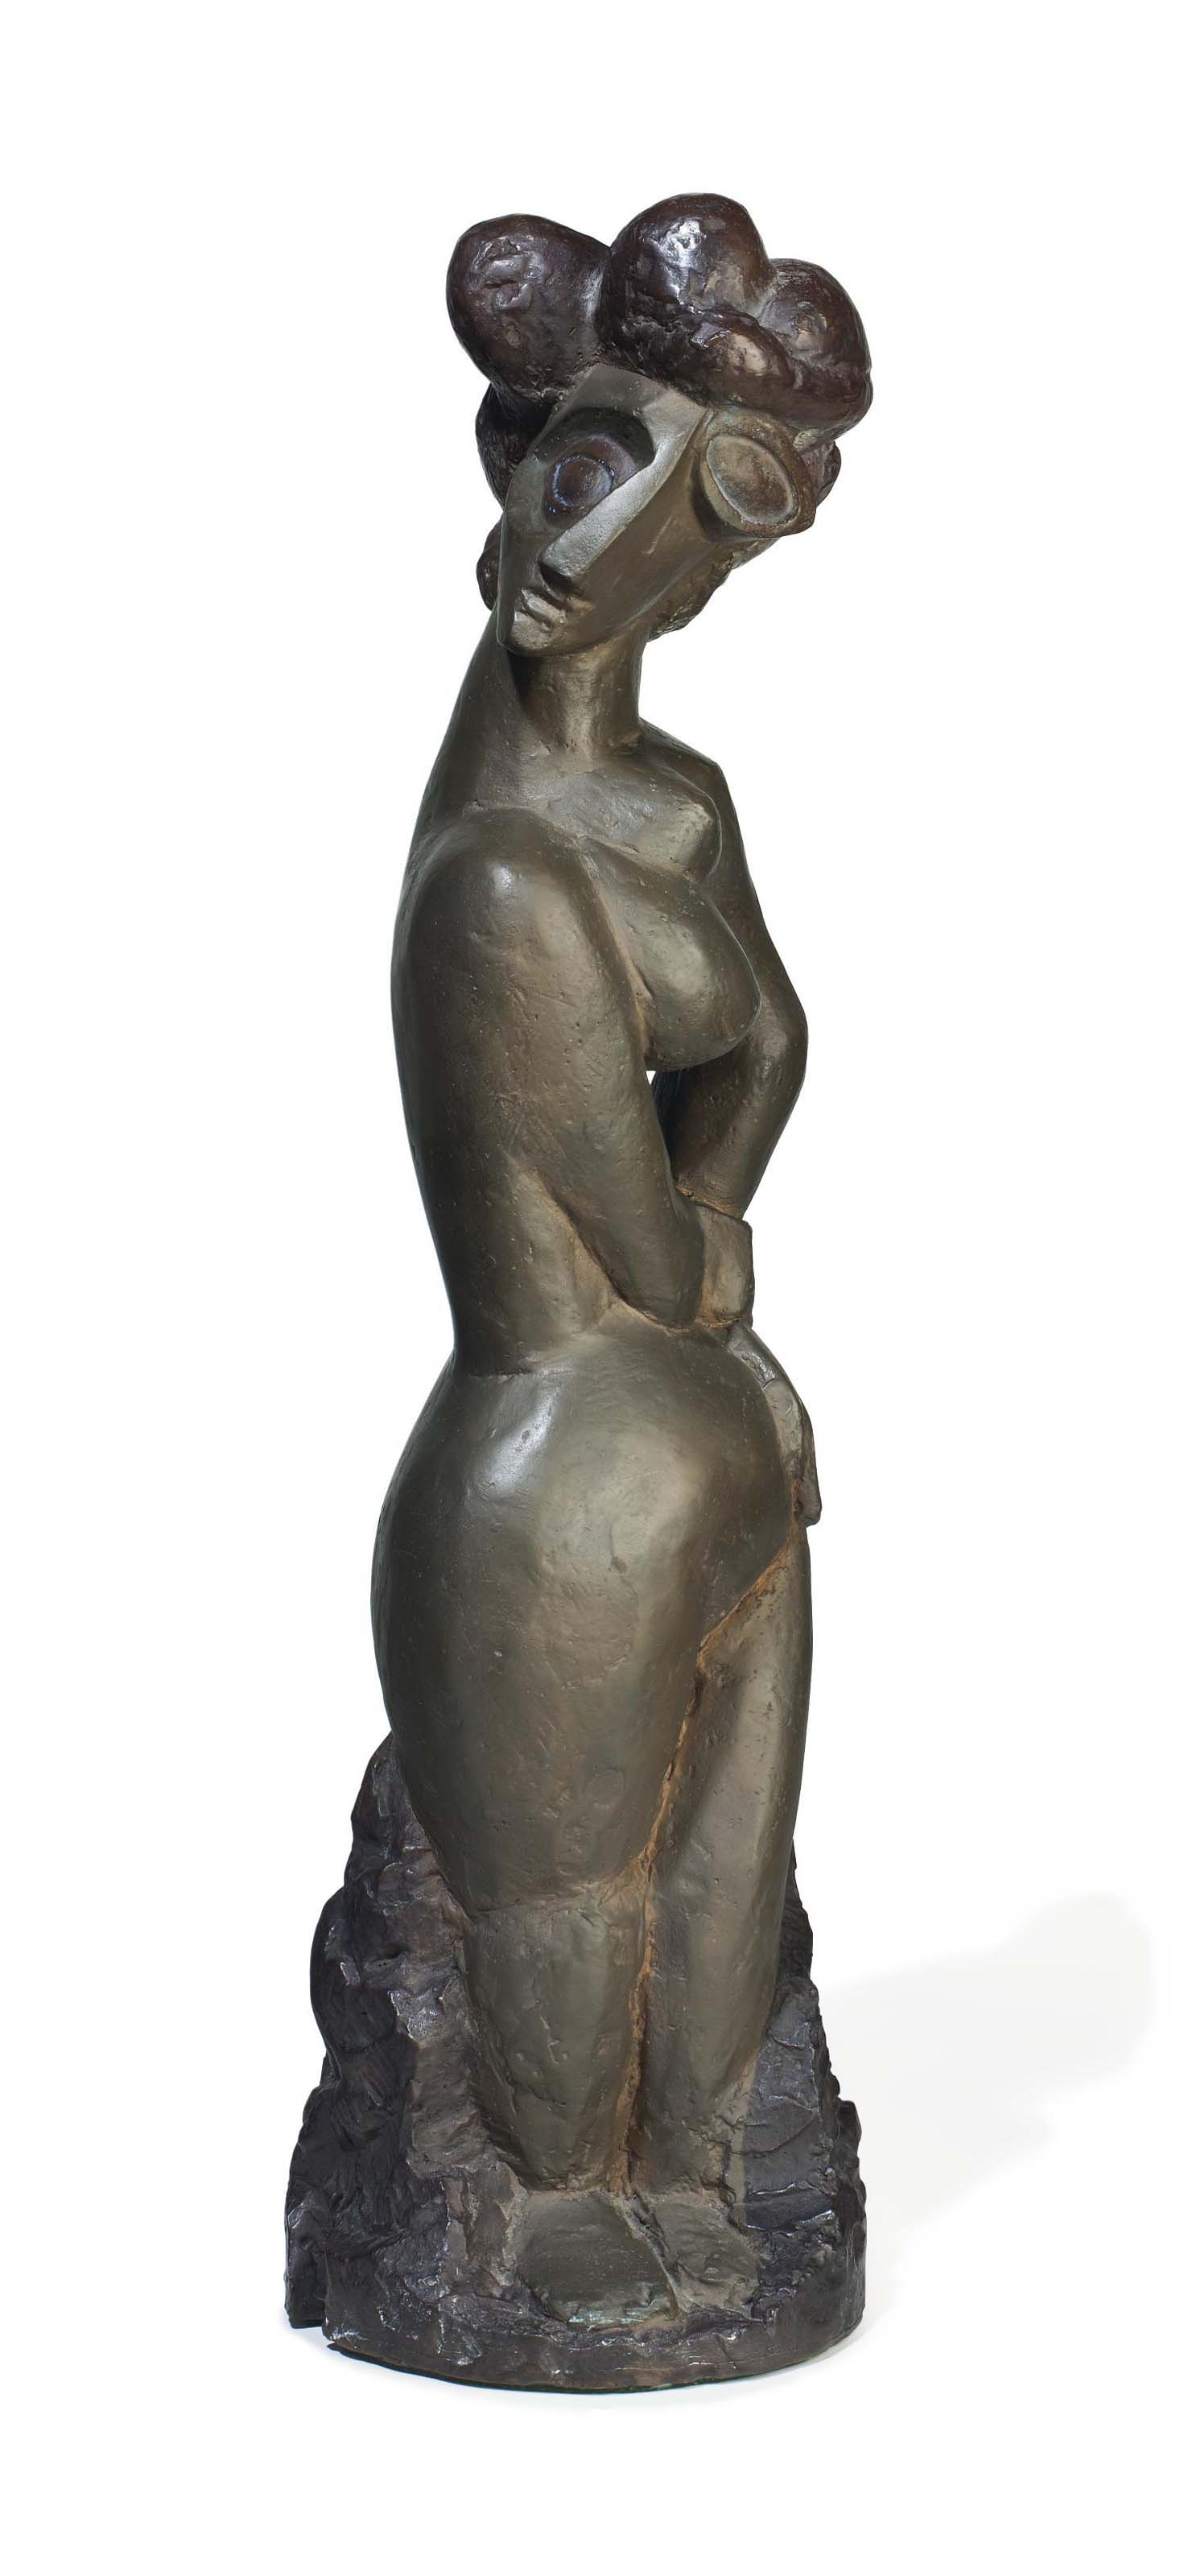 'Figure in Rotation'